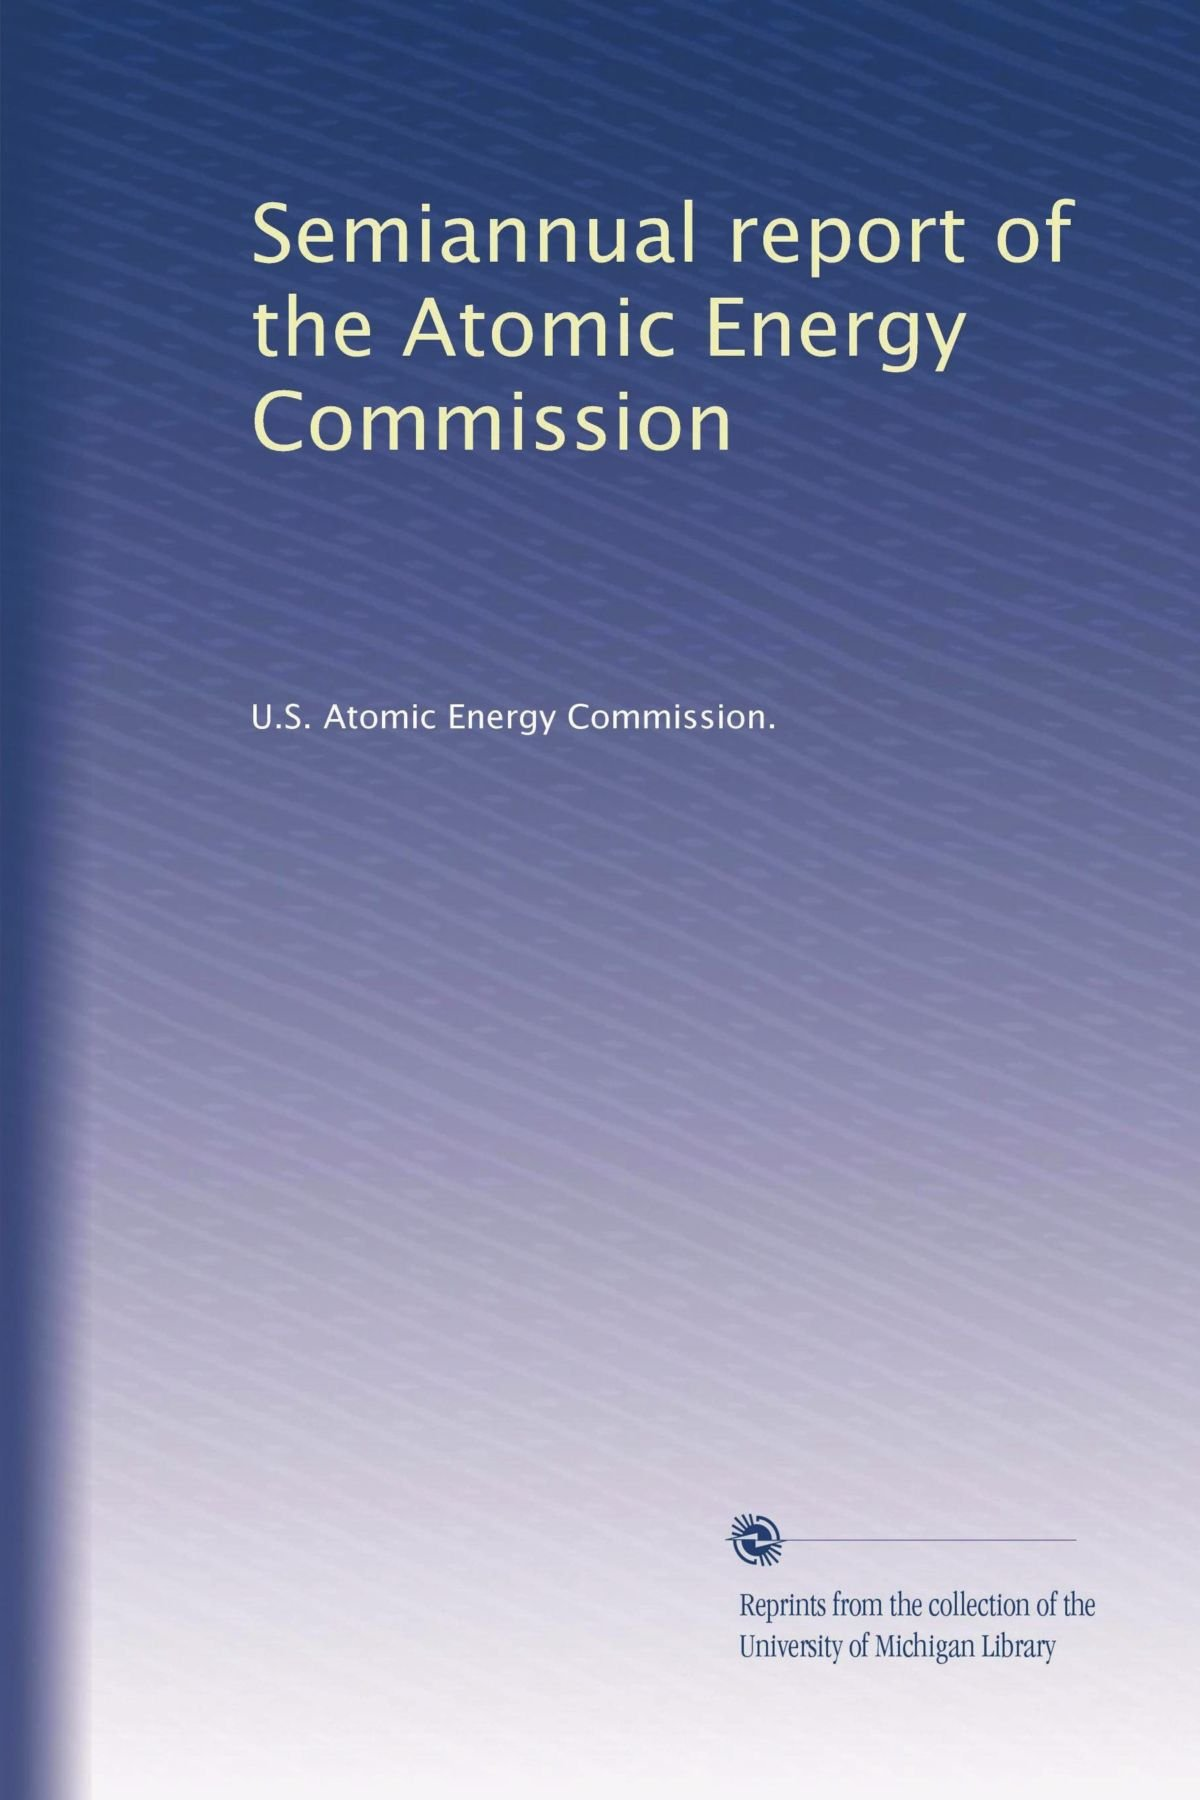 Download Semiannual report of the Atomic Energy Commission (Volume 20) ebook